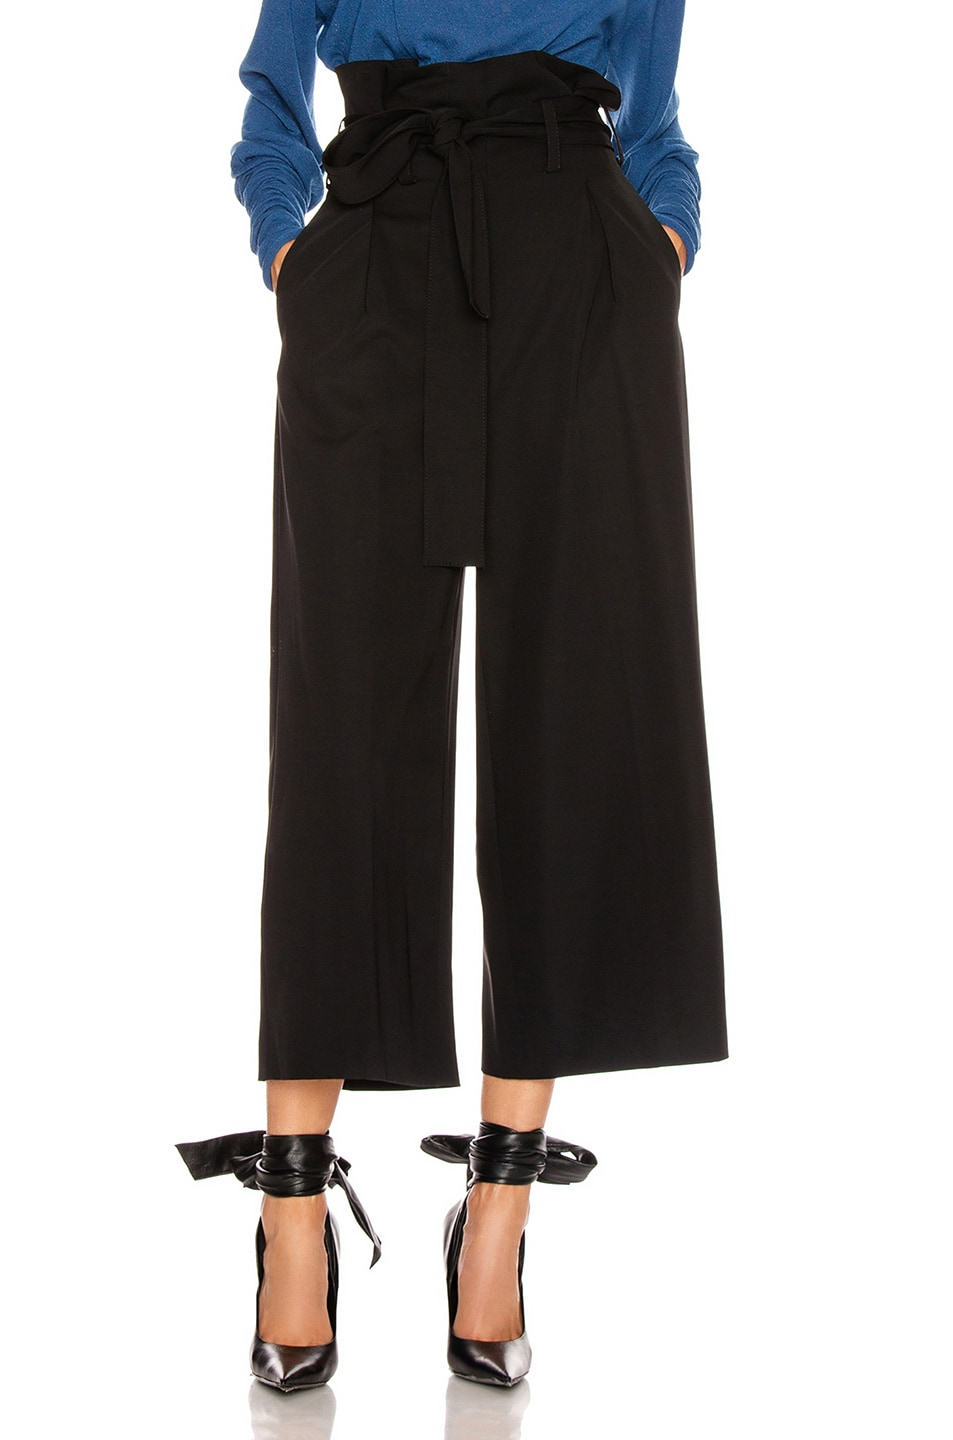 Image 1 of Stella McCartney Maggie Light Wool Tie Tailored Pant in Black